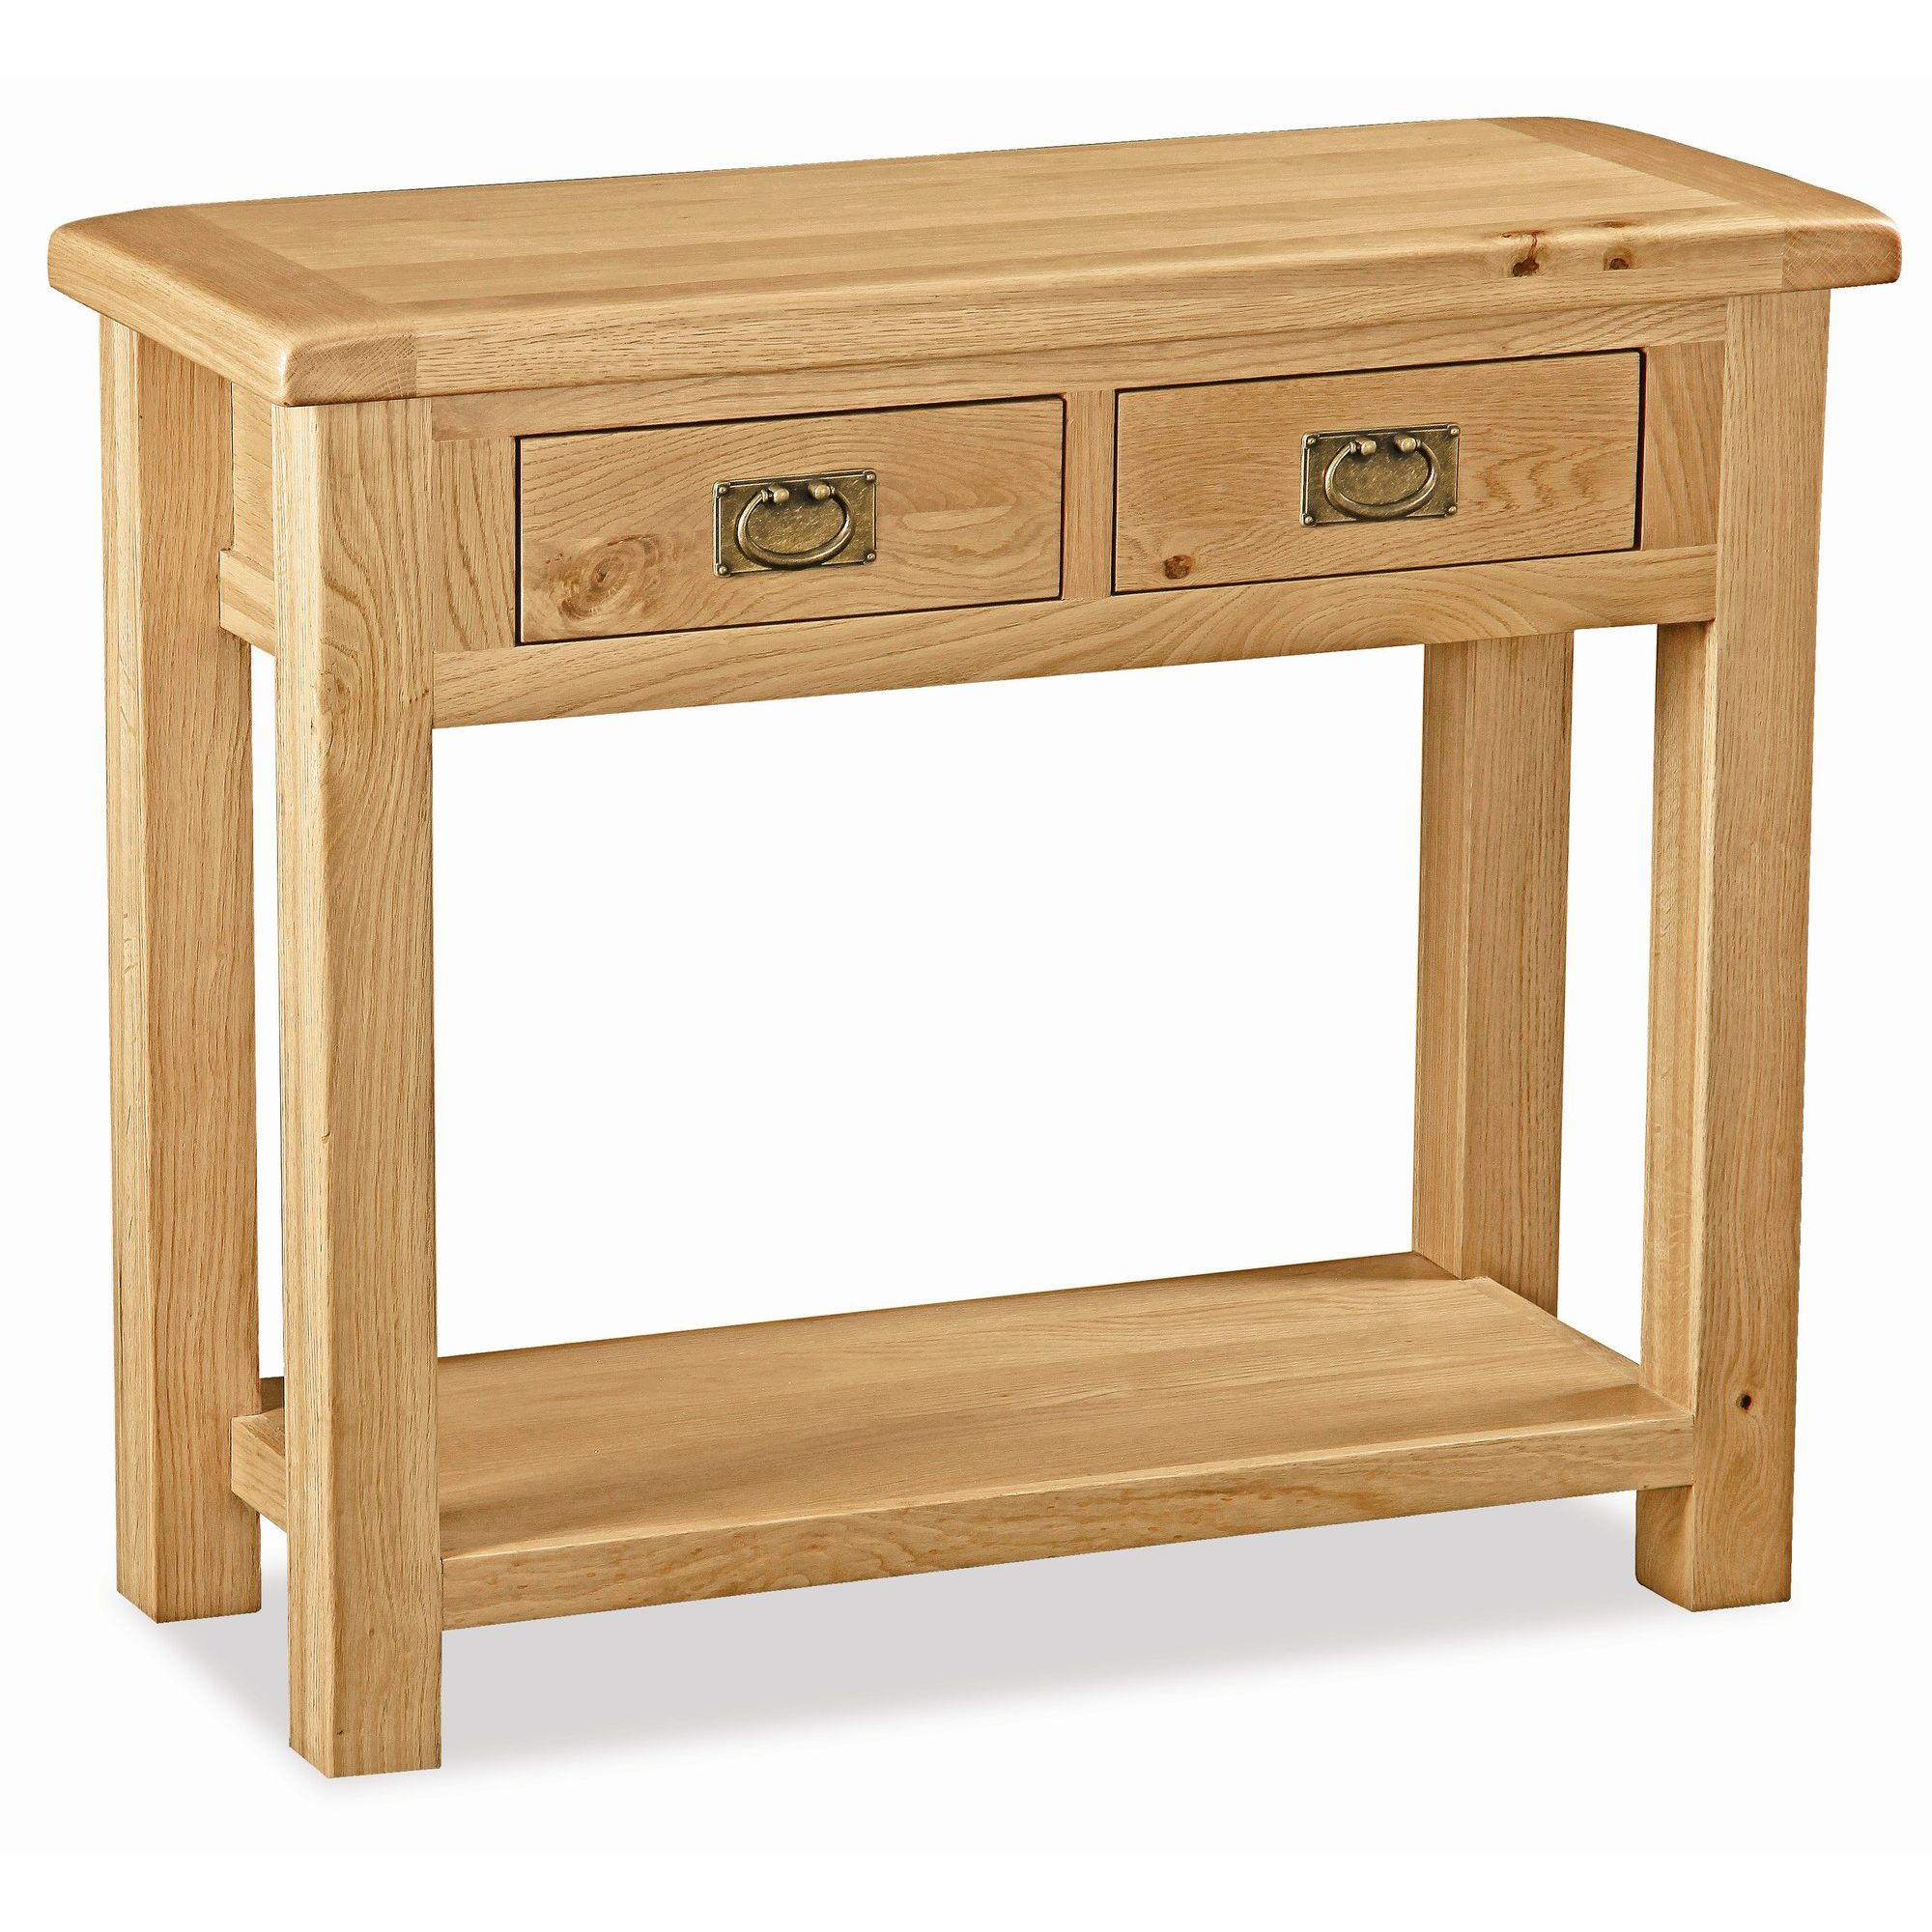 Alterton Furniture Pemberley Console Table at Tesco Direct